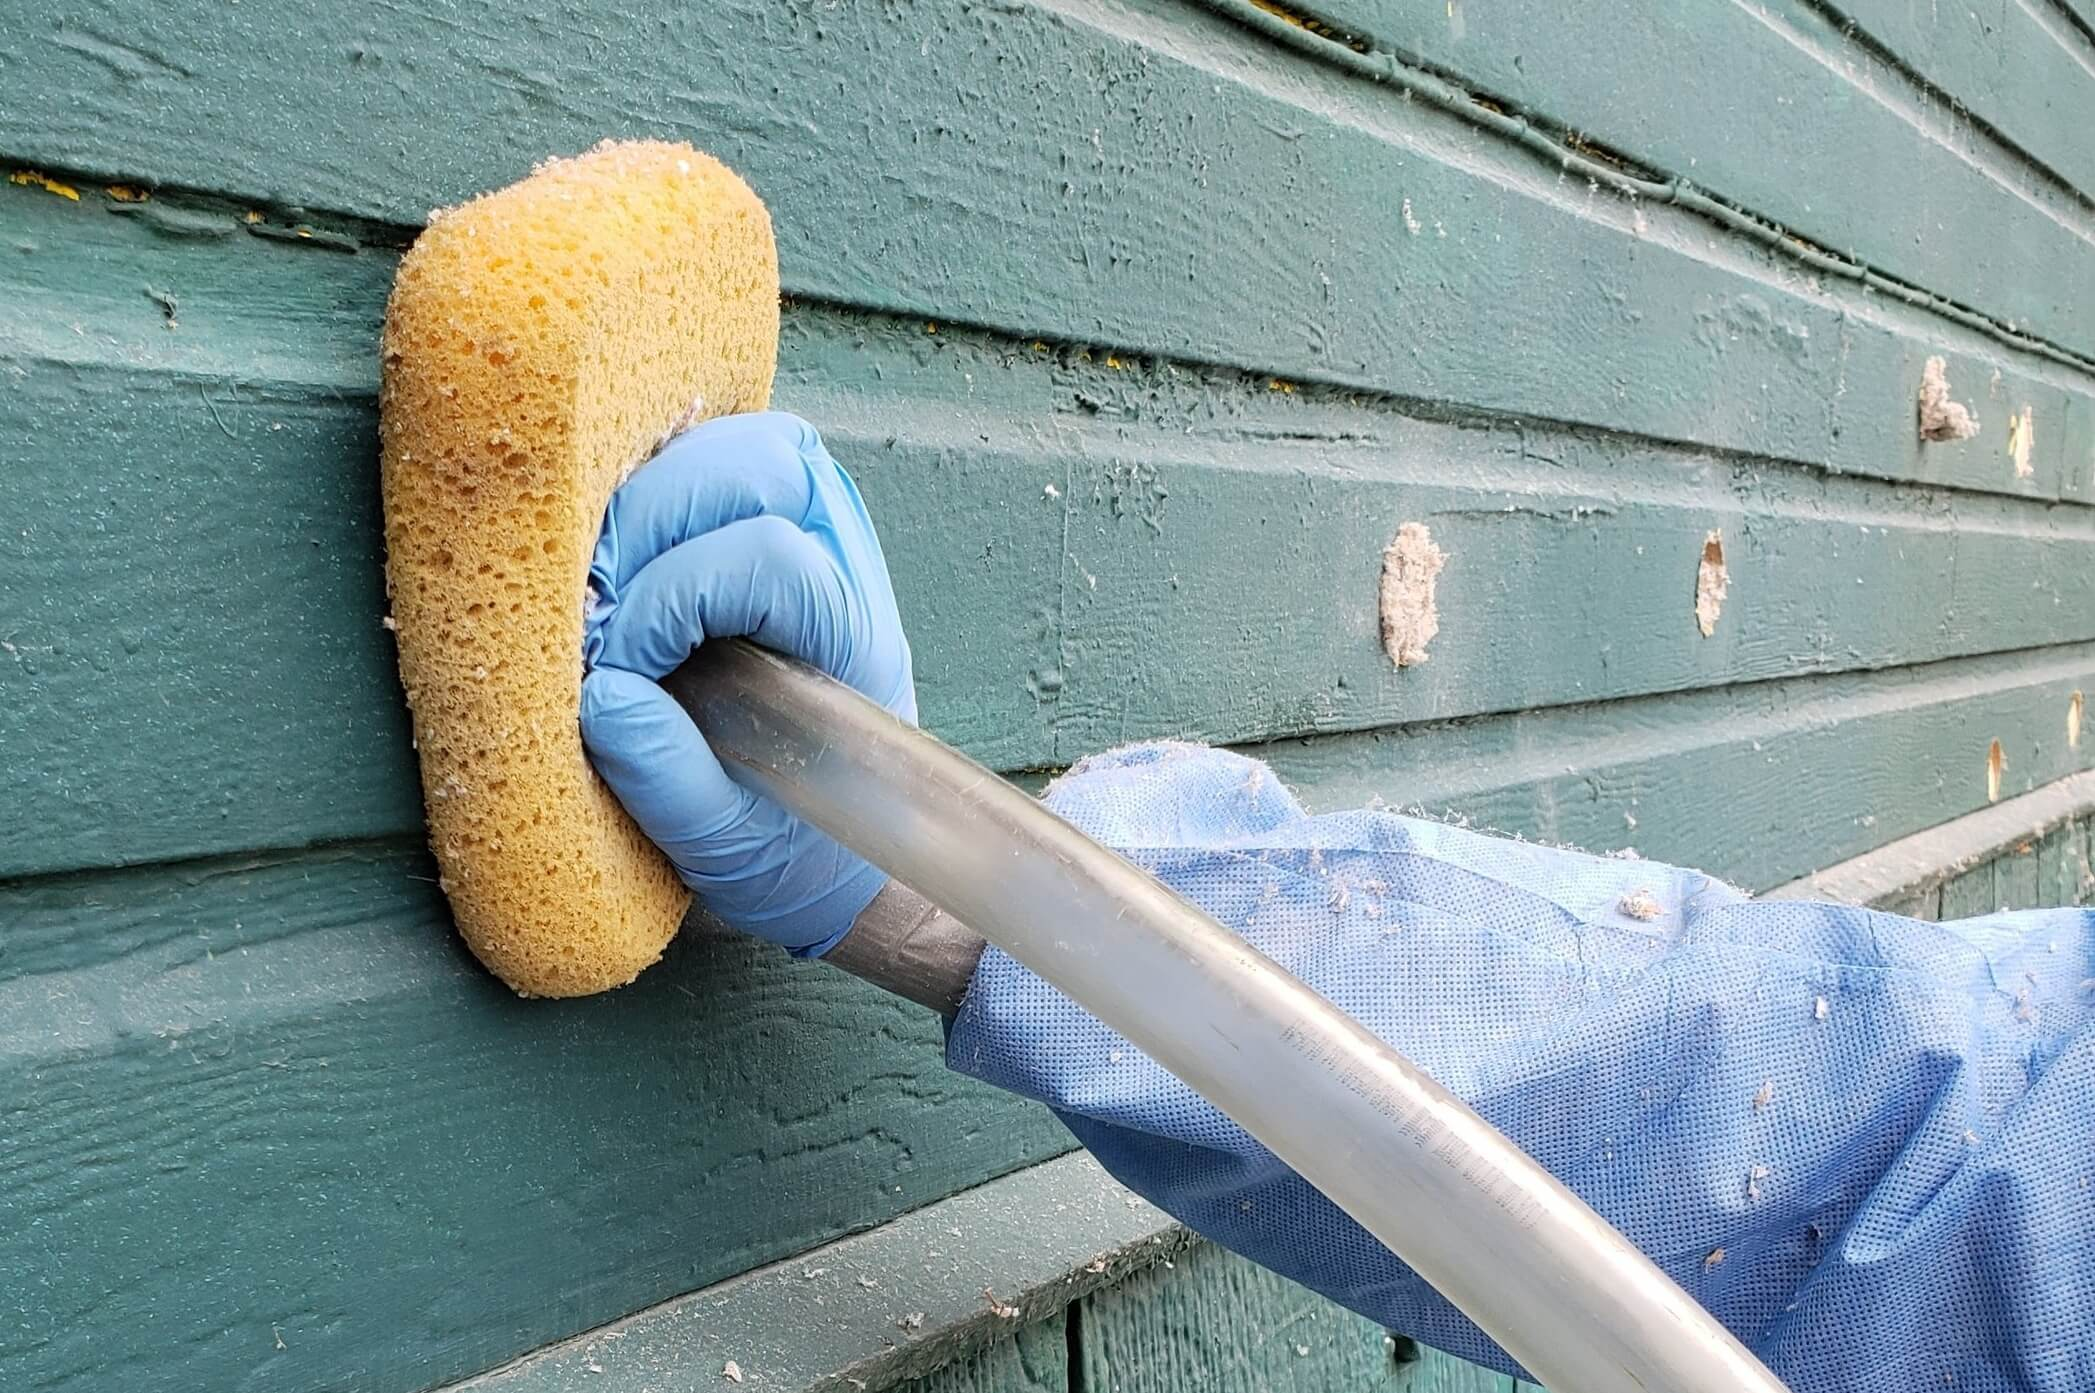 Drill & Fill is an excellent option to insulate existing walls and structures without removing siding or drywall.